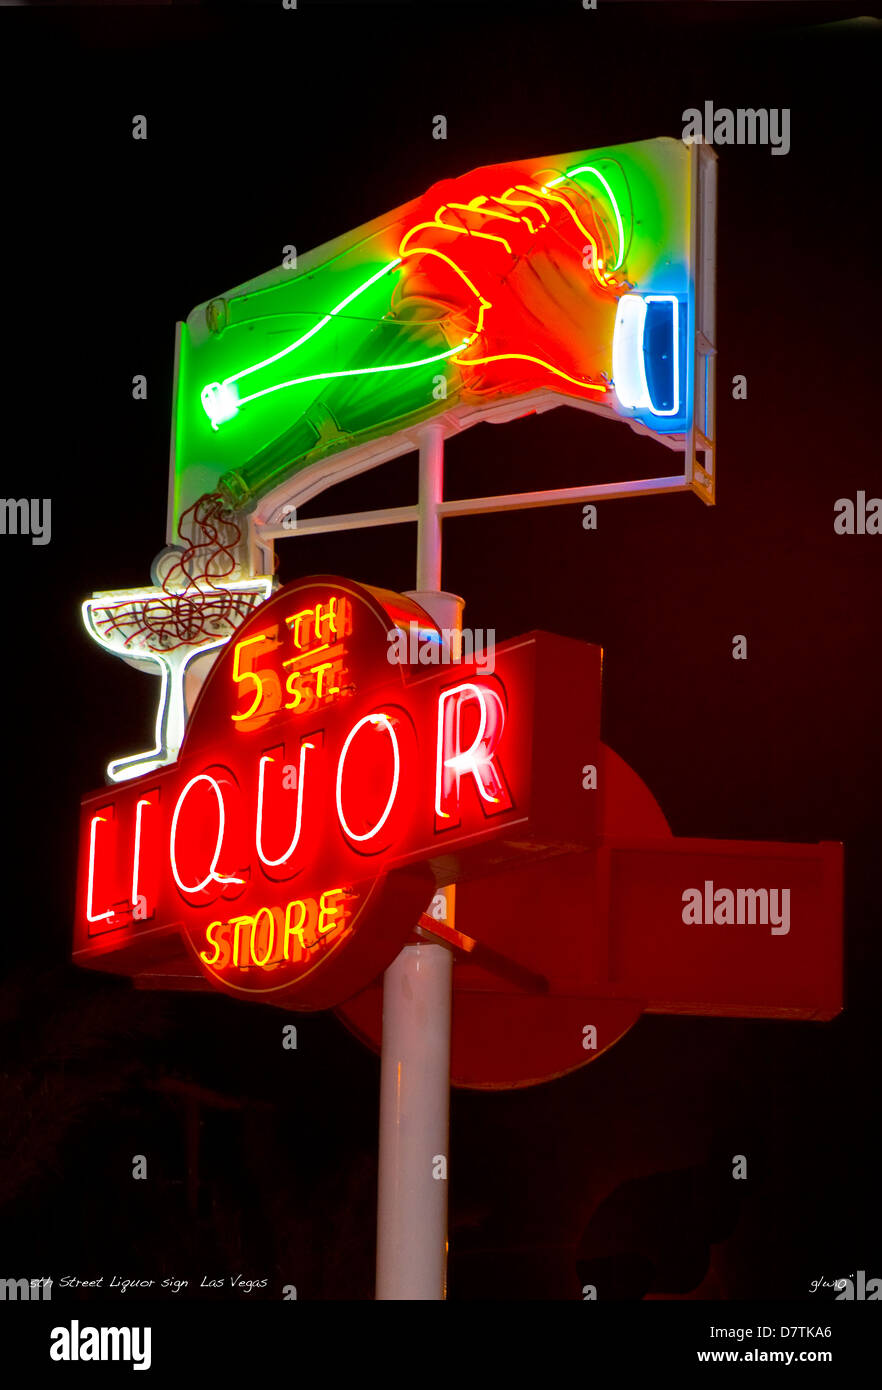 A high quality night shot of the 5th street liquor store sign - Stock Image